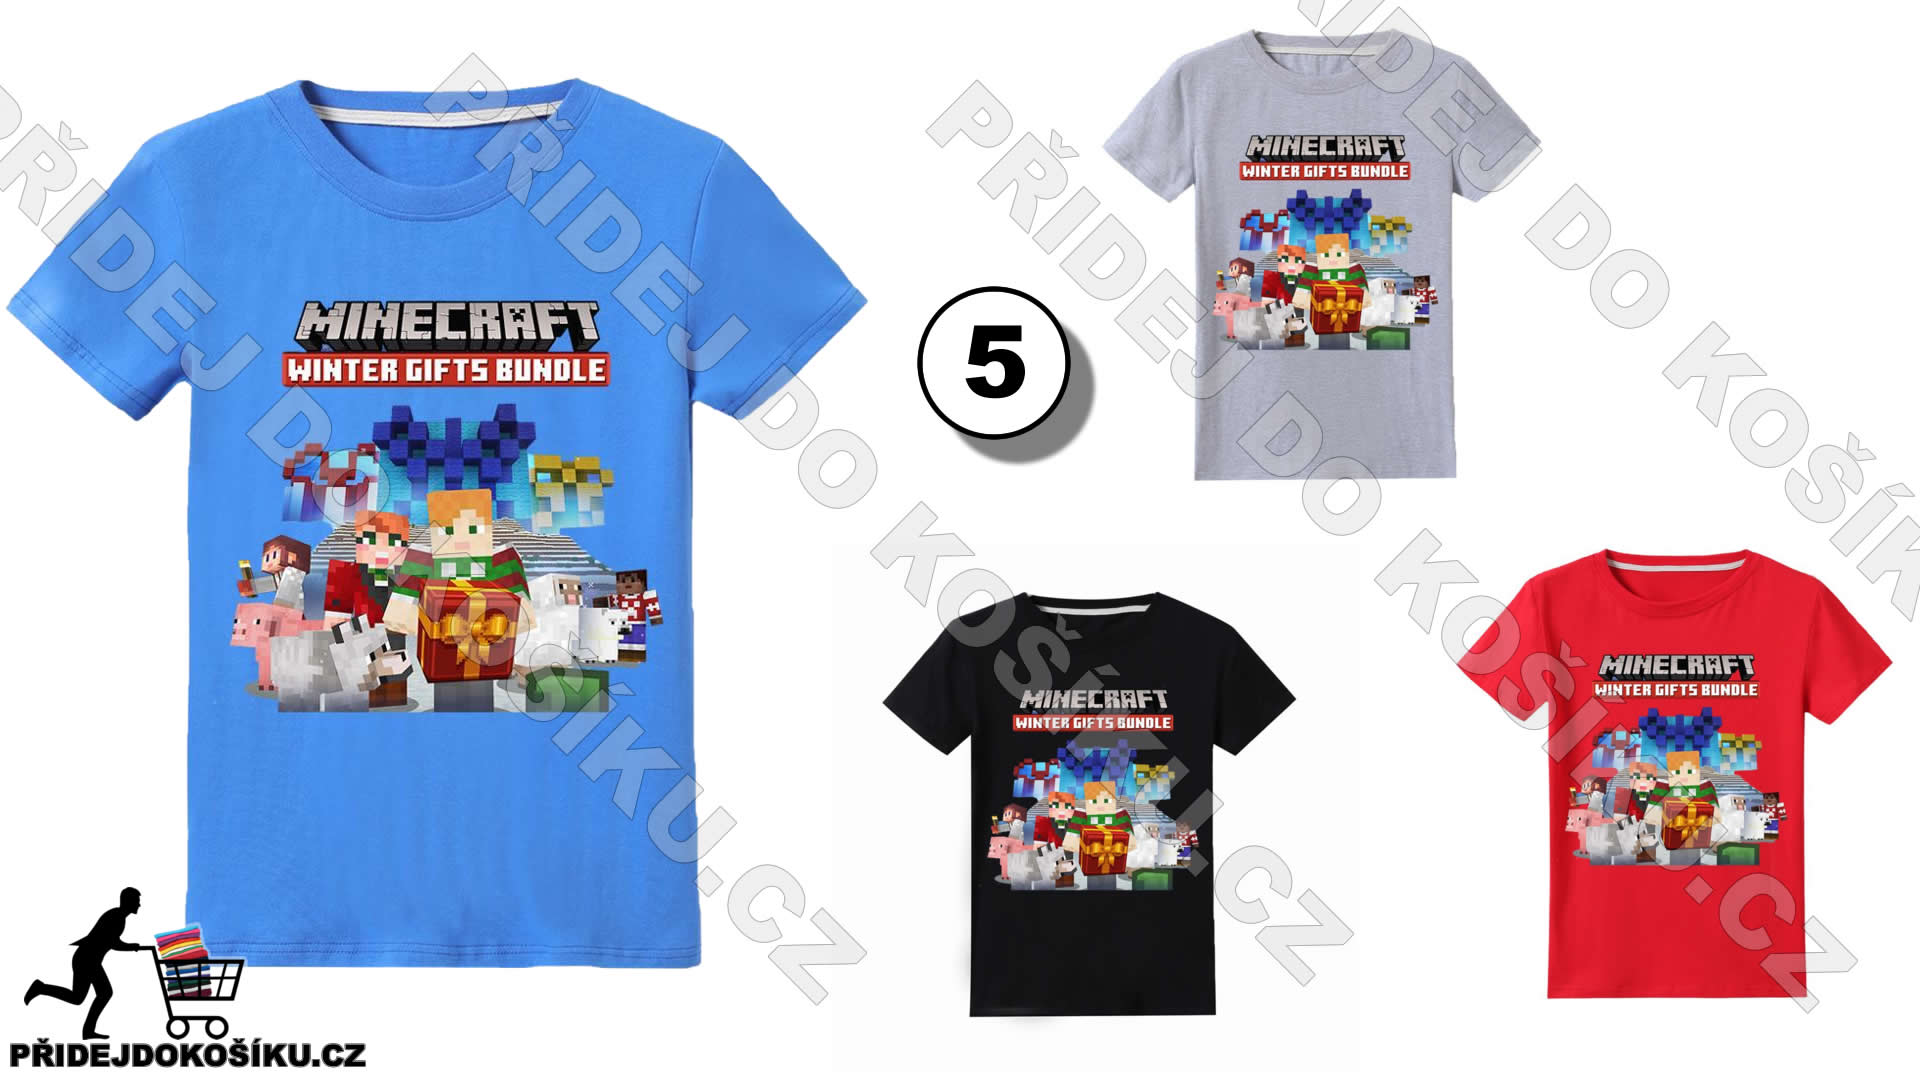 minecraft winter gifts bundle tričko